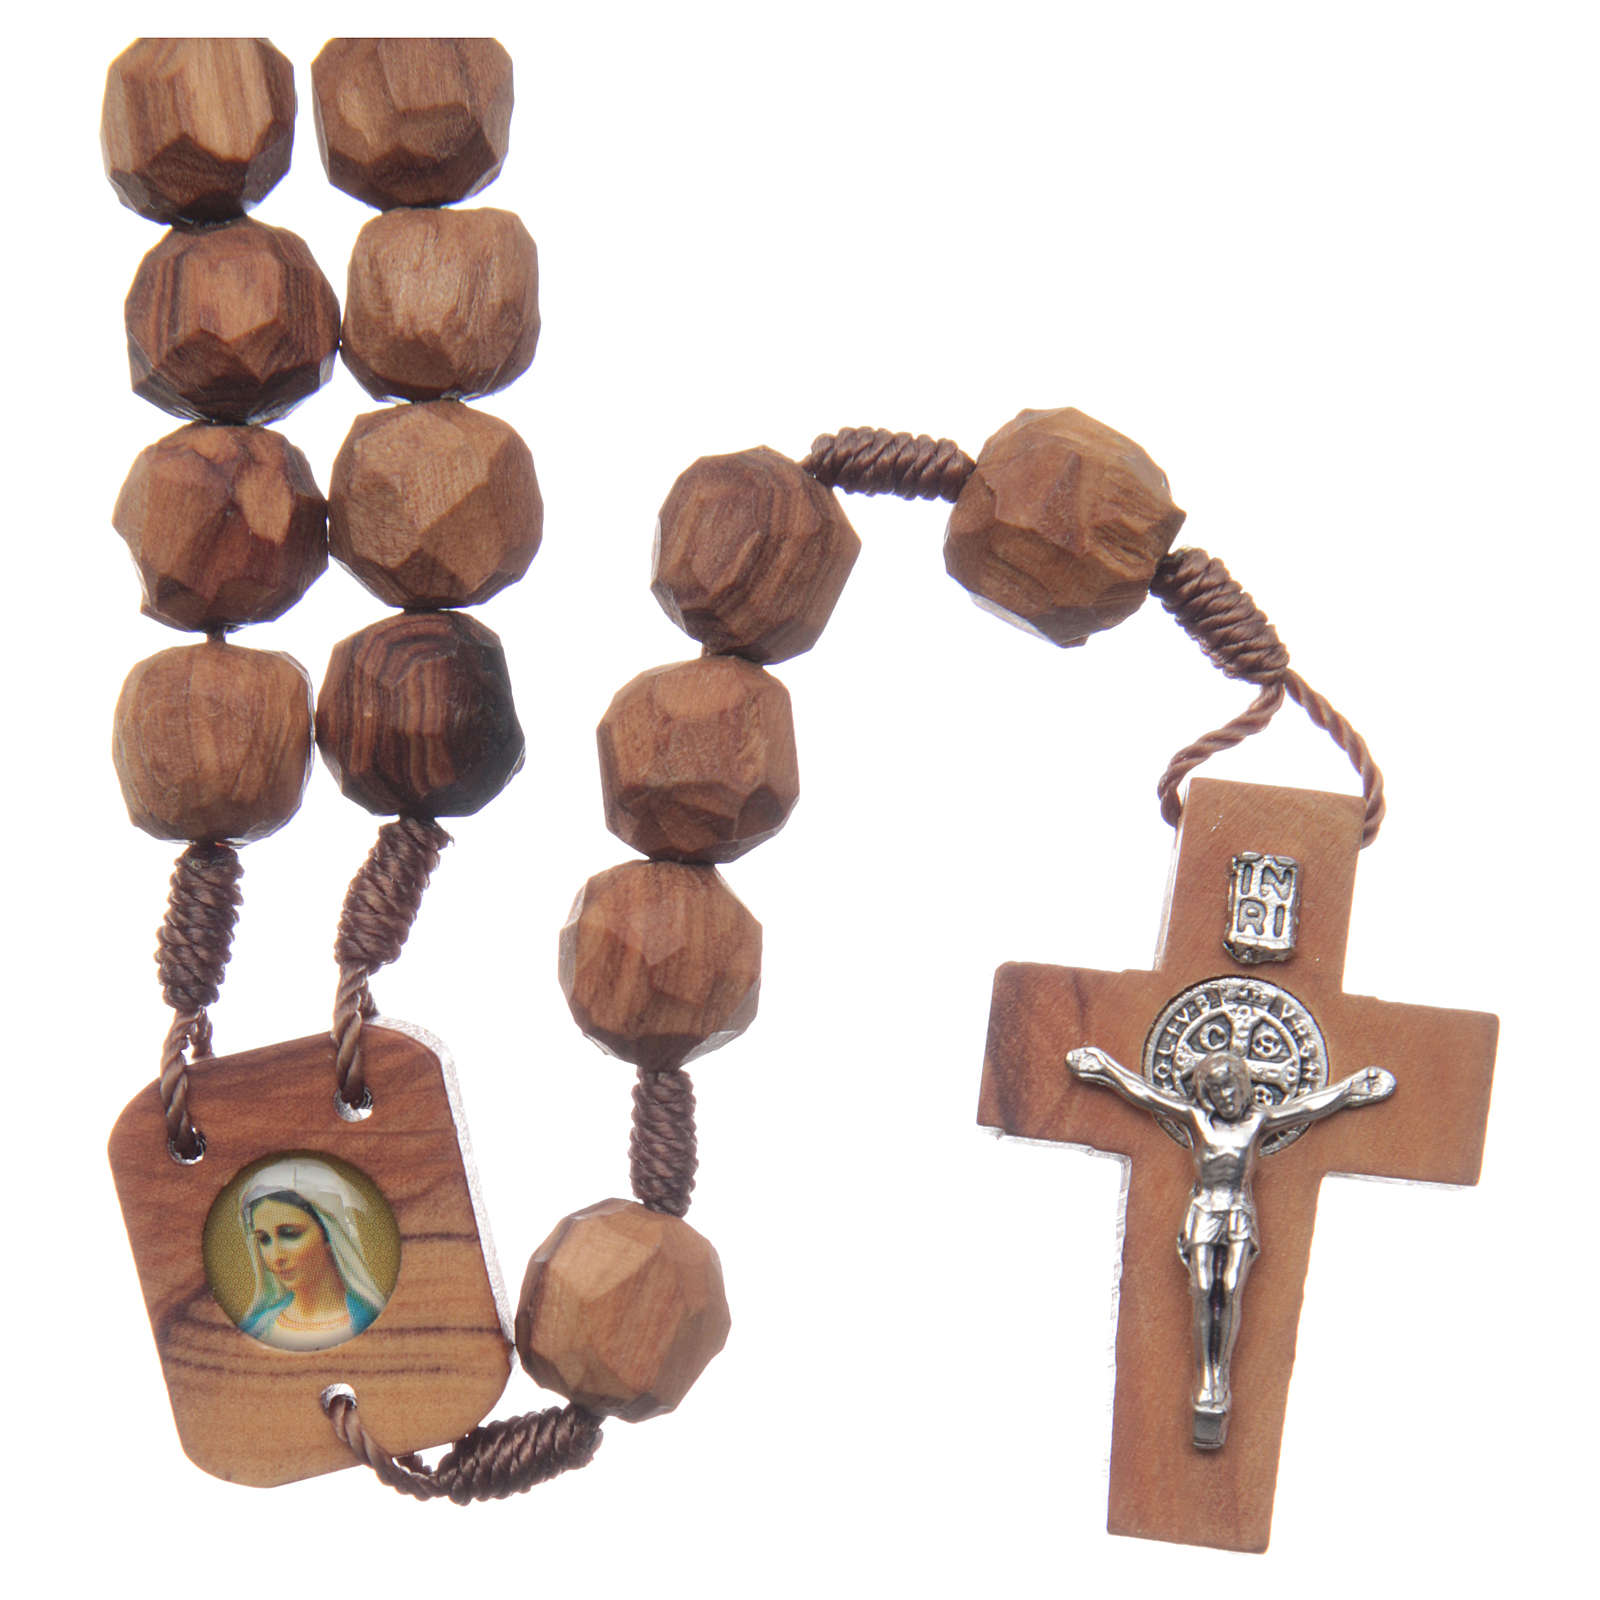 Medjugorje rosary with olive wood, cord, heart medal 4